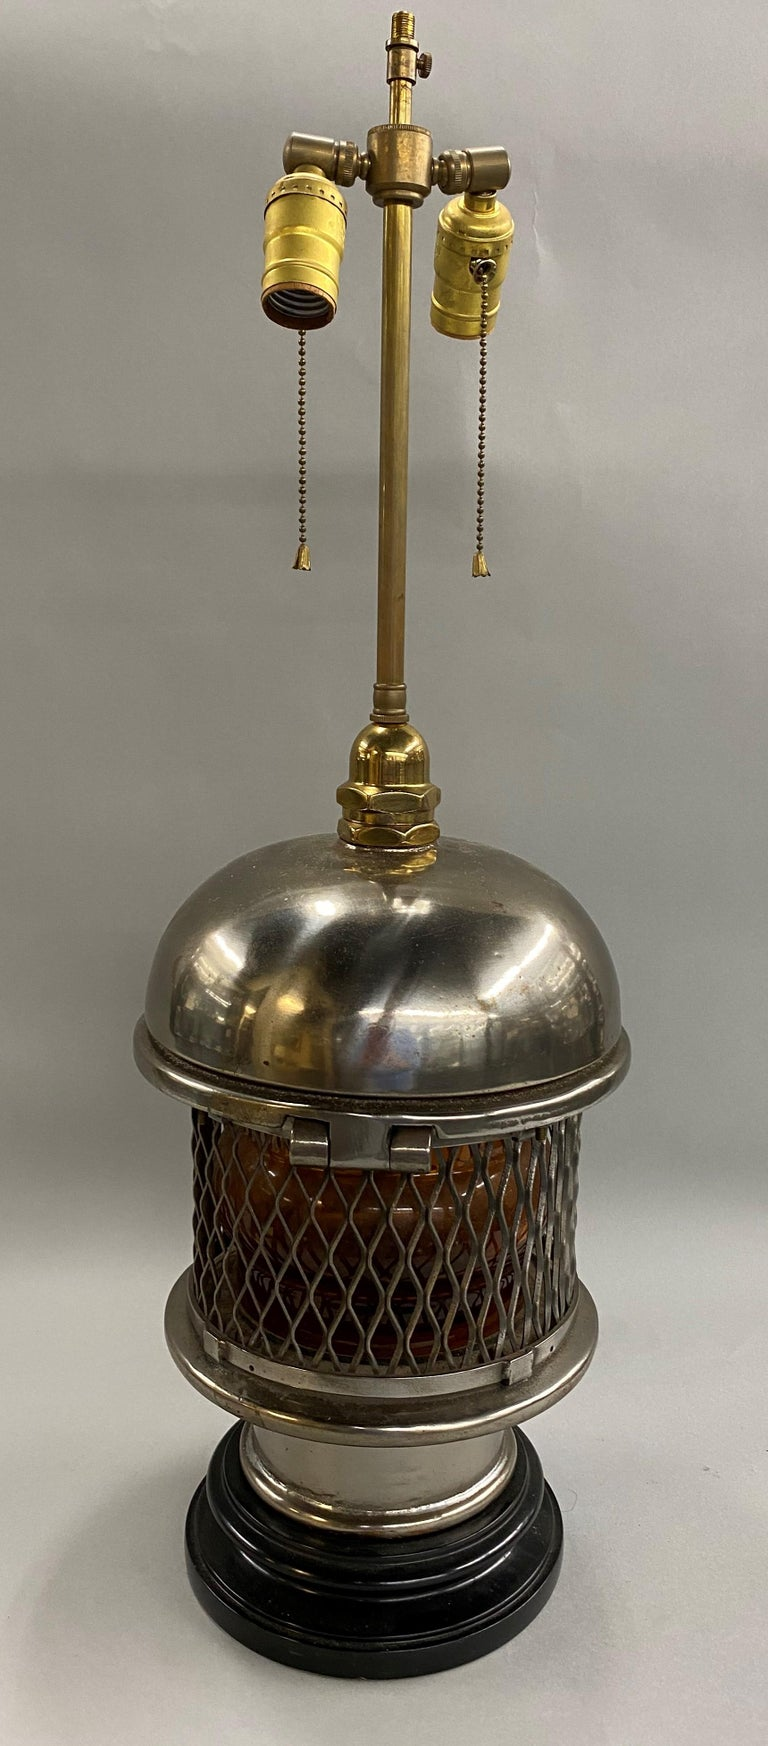 Chrome Top Nautical Ship's Lantern Converted Table Lamp, circa 1930s In Good Condition For Sale In Milford, NH